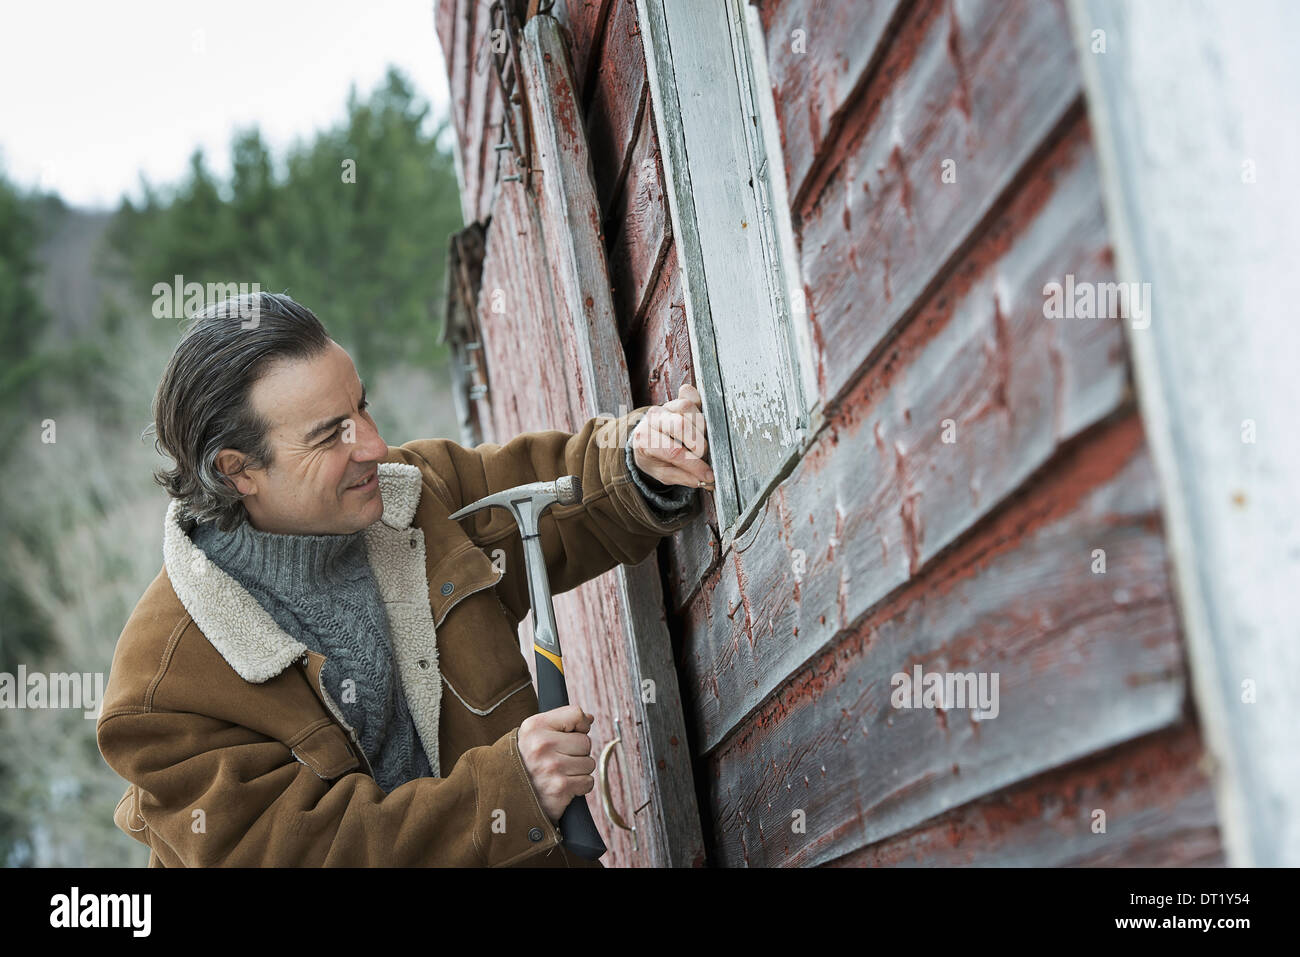 An organic farm in winter in New York State USA A man repairing a barn hammering nails into wooden shingle - Stock Image